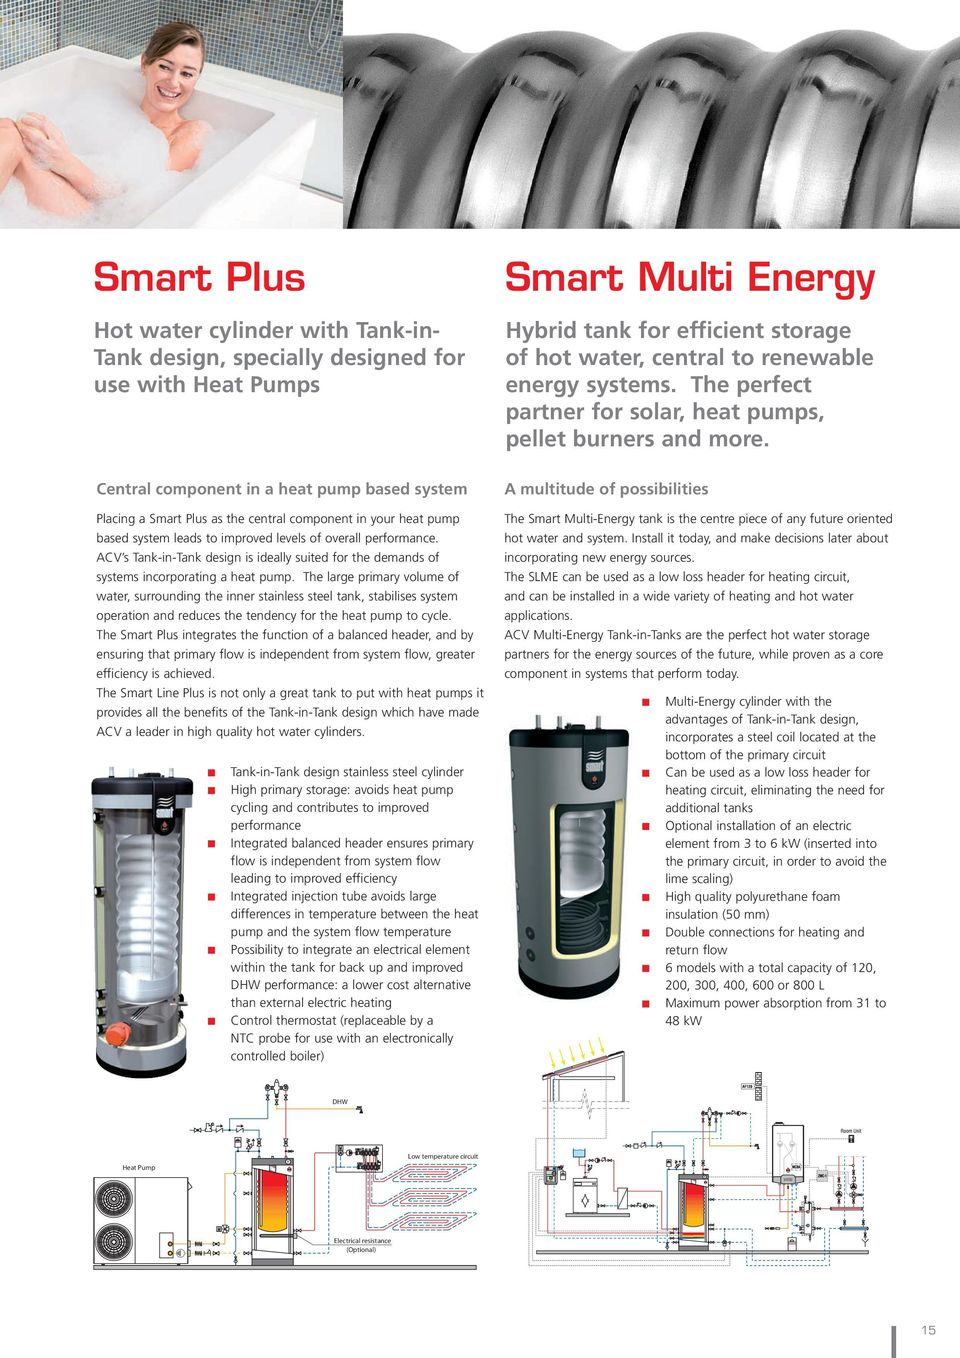 Central component in a heat pump based system Placing a Smart Plus as the central component in your heat pump based system leads to improved levels of overall performance.